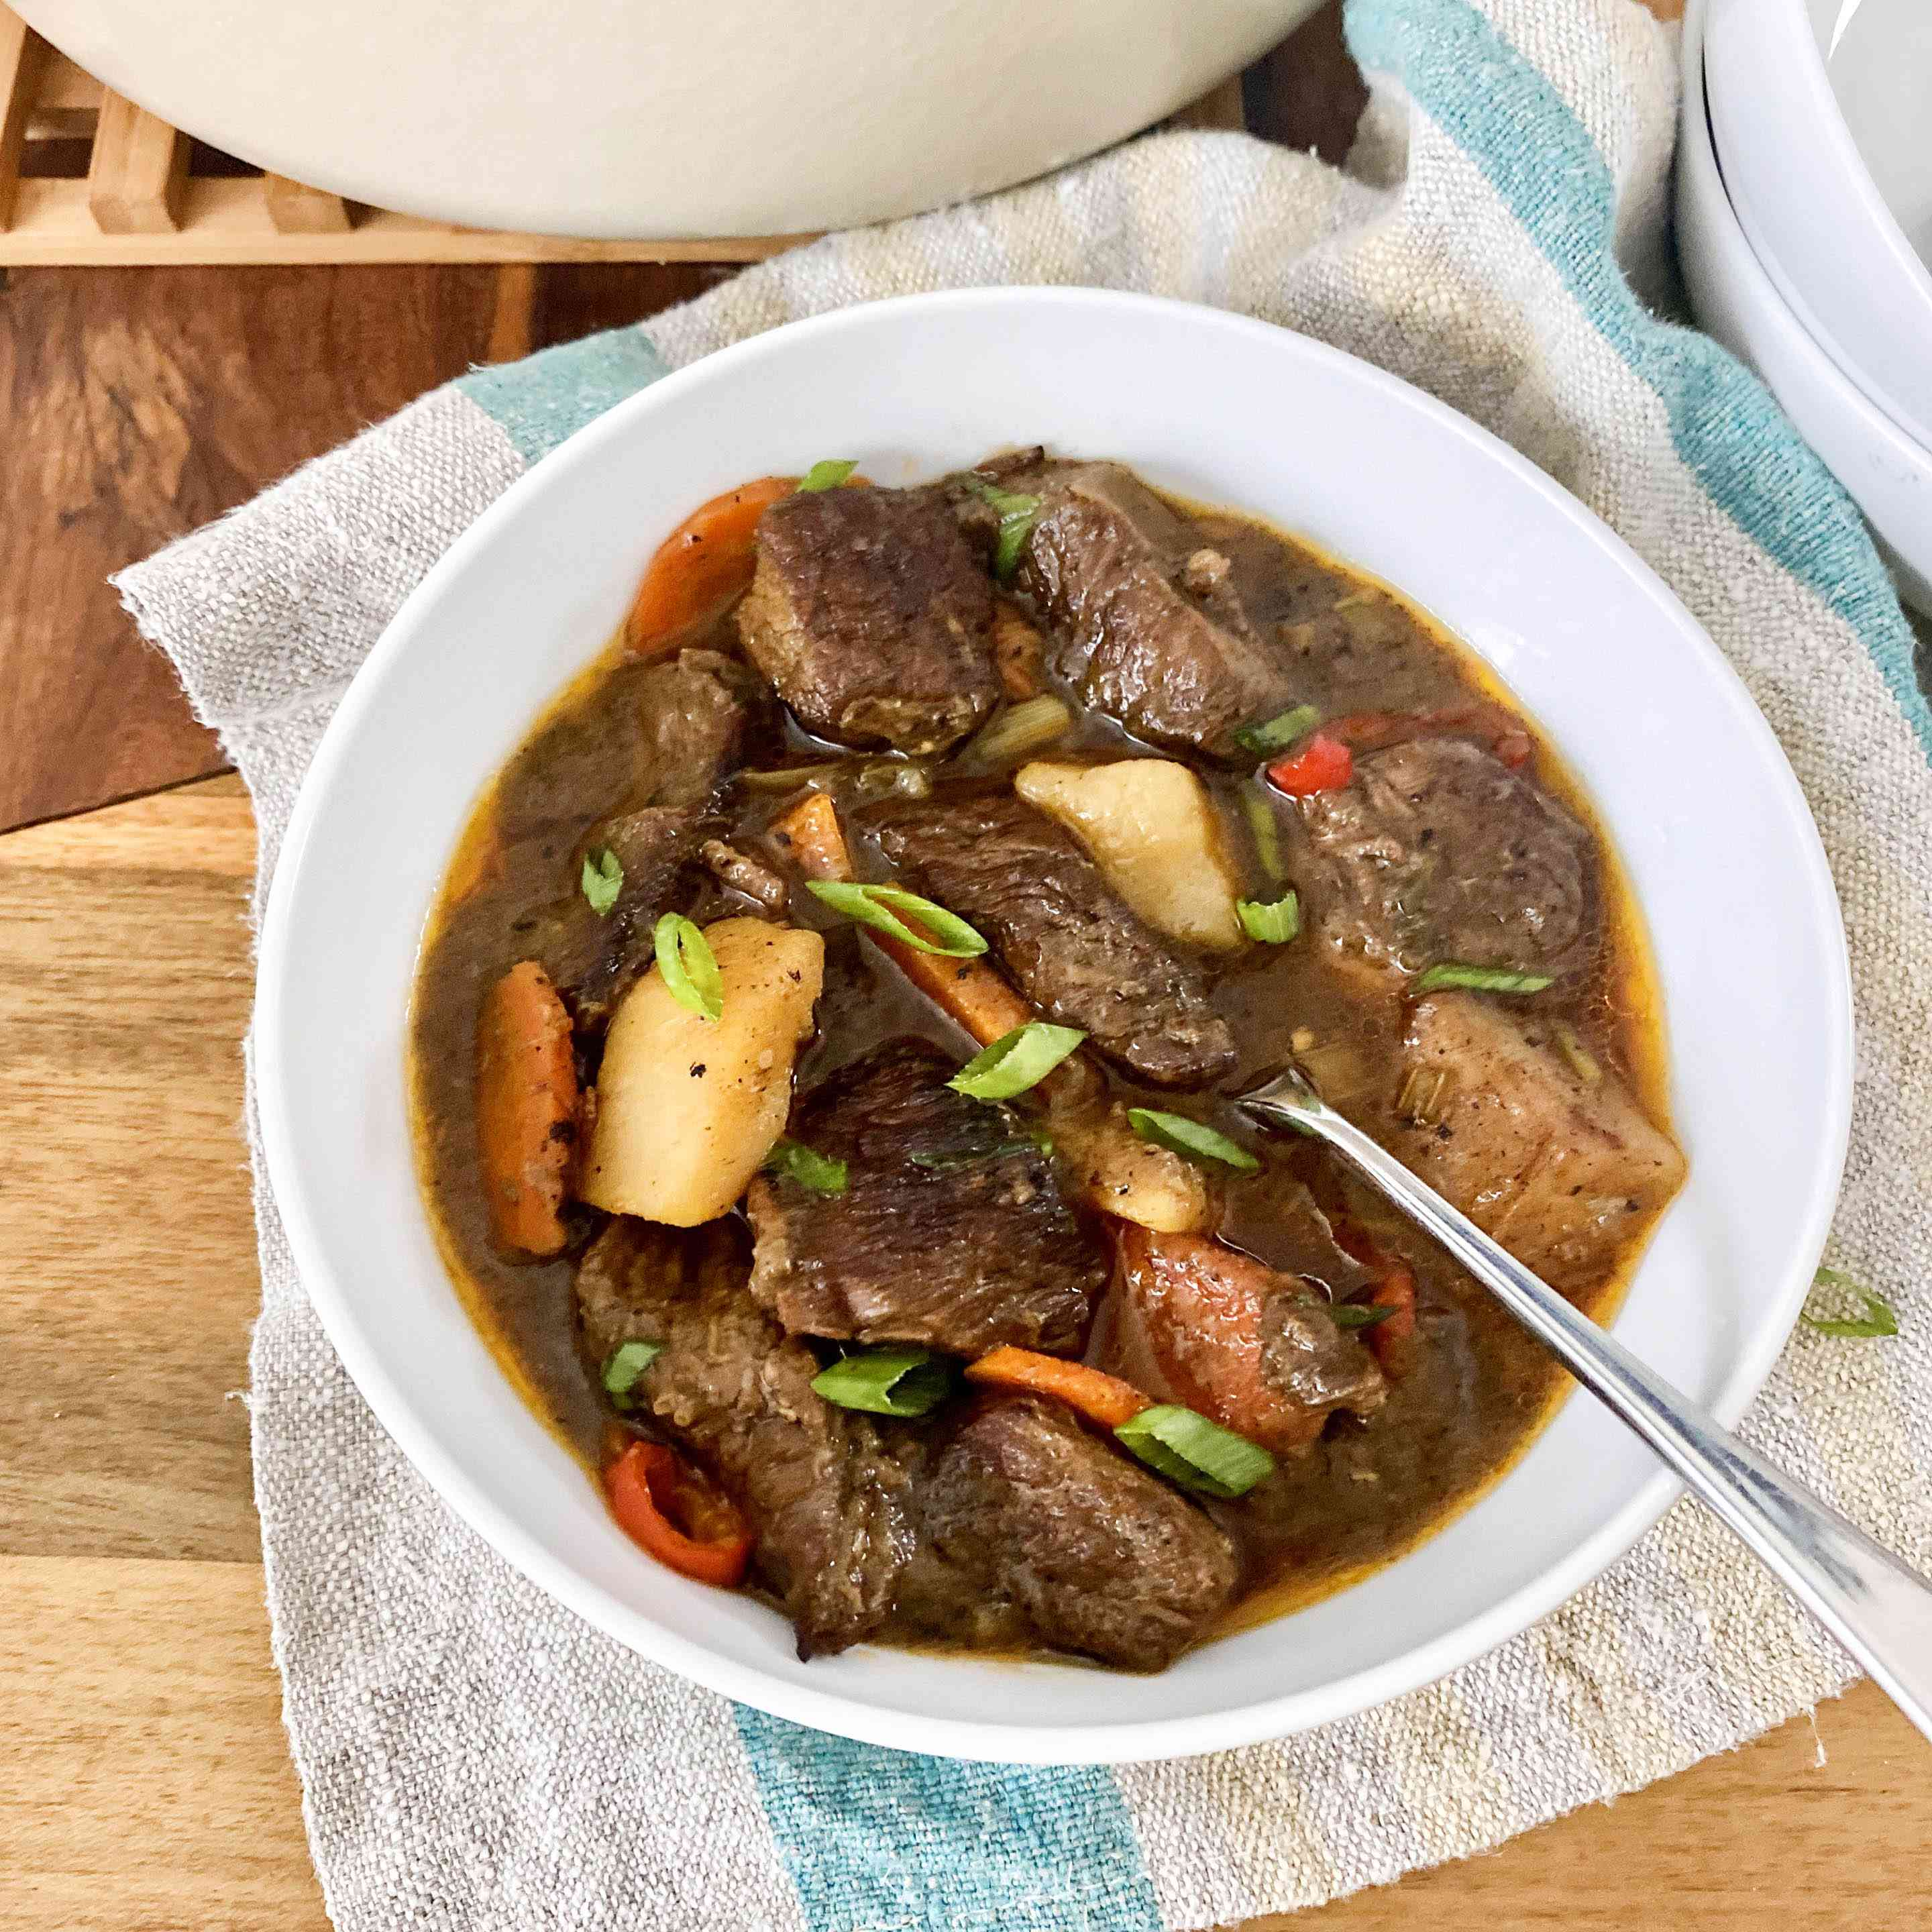 One bowl of Jamaican Beef Stew.